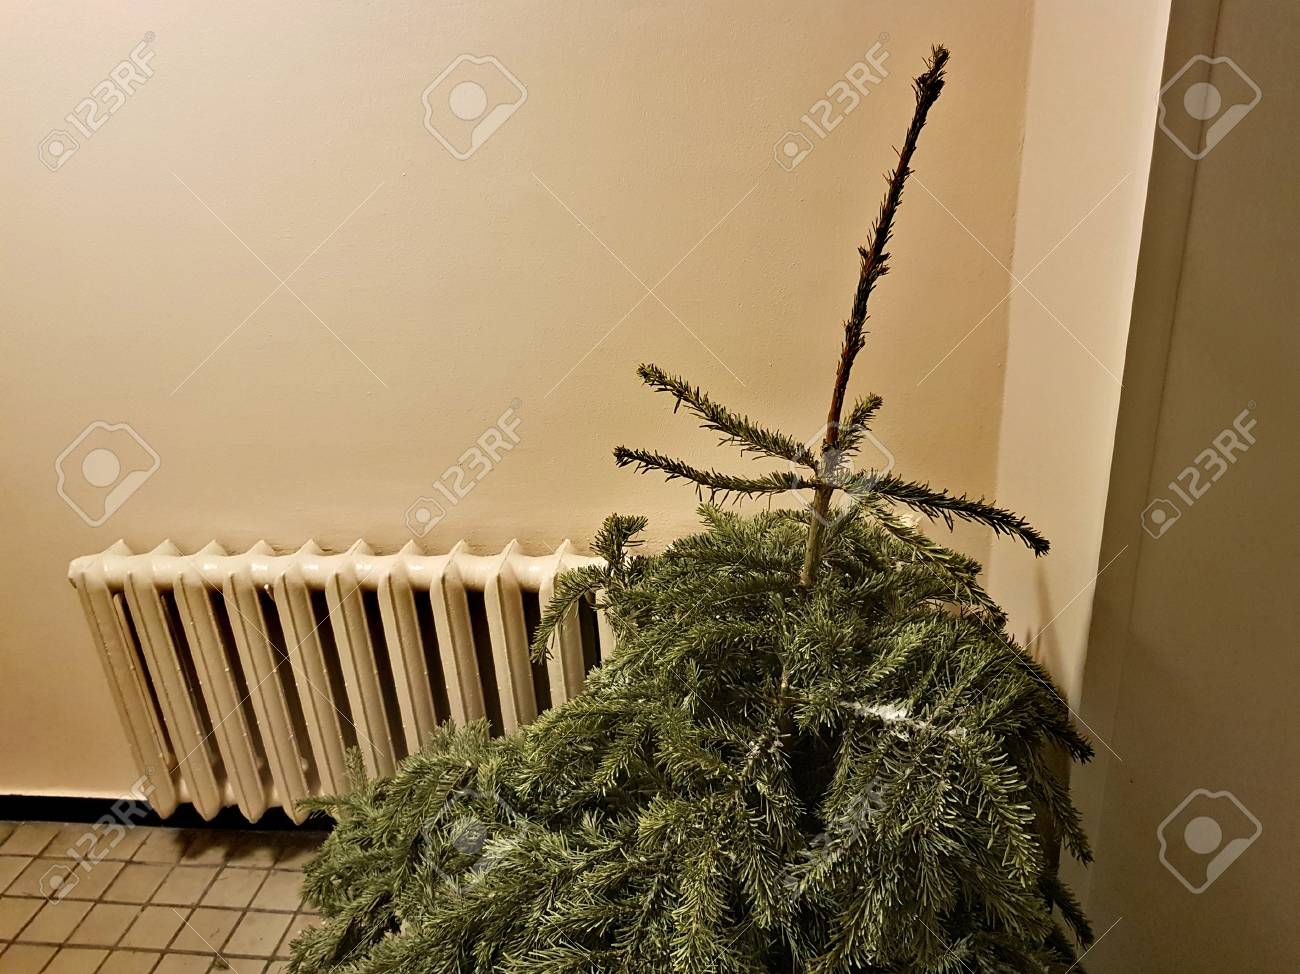 Green Christmas Tree For Recycling After The Holidays On The Stock